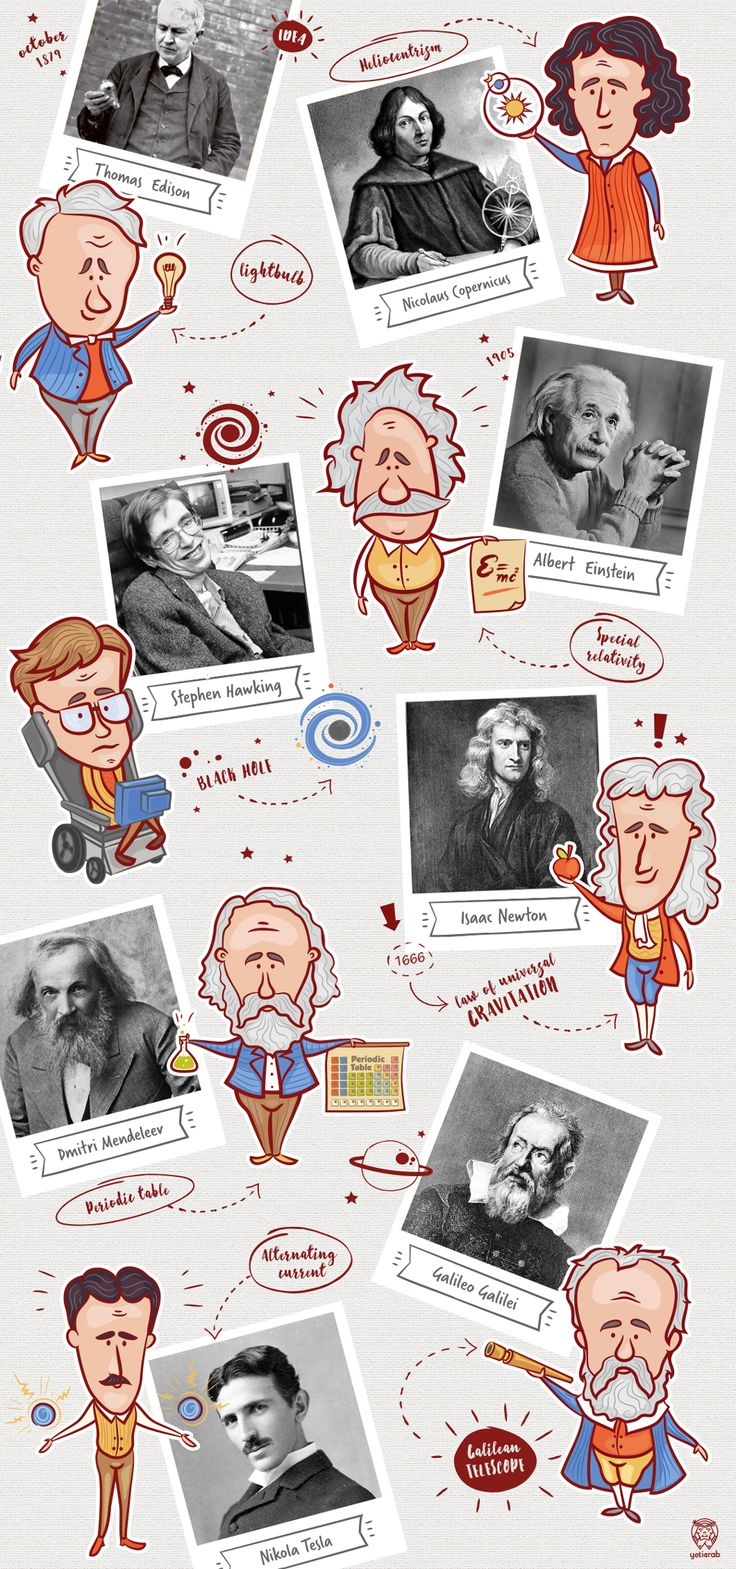 Greatest scientists VectorIllustration Set with Thomas Edison, Nikola Tesla, Albert Einstein, Stephen Hawking, Isaac Newton, Nicolaus Copernicus, Galileo Galilei and Dmitri Mendeleev